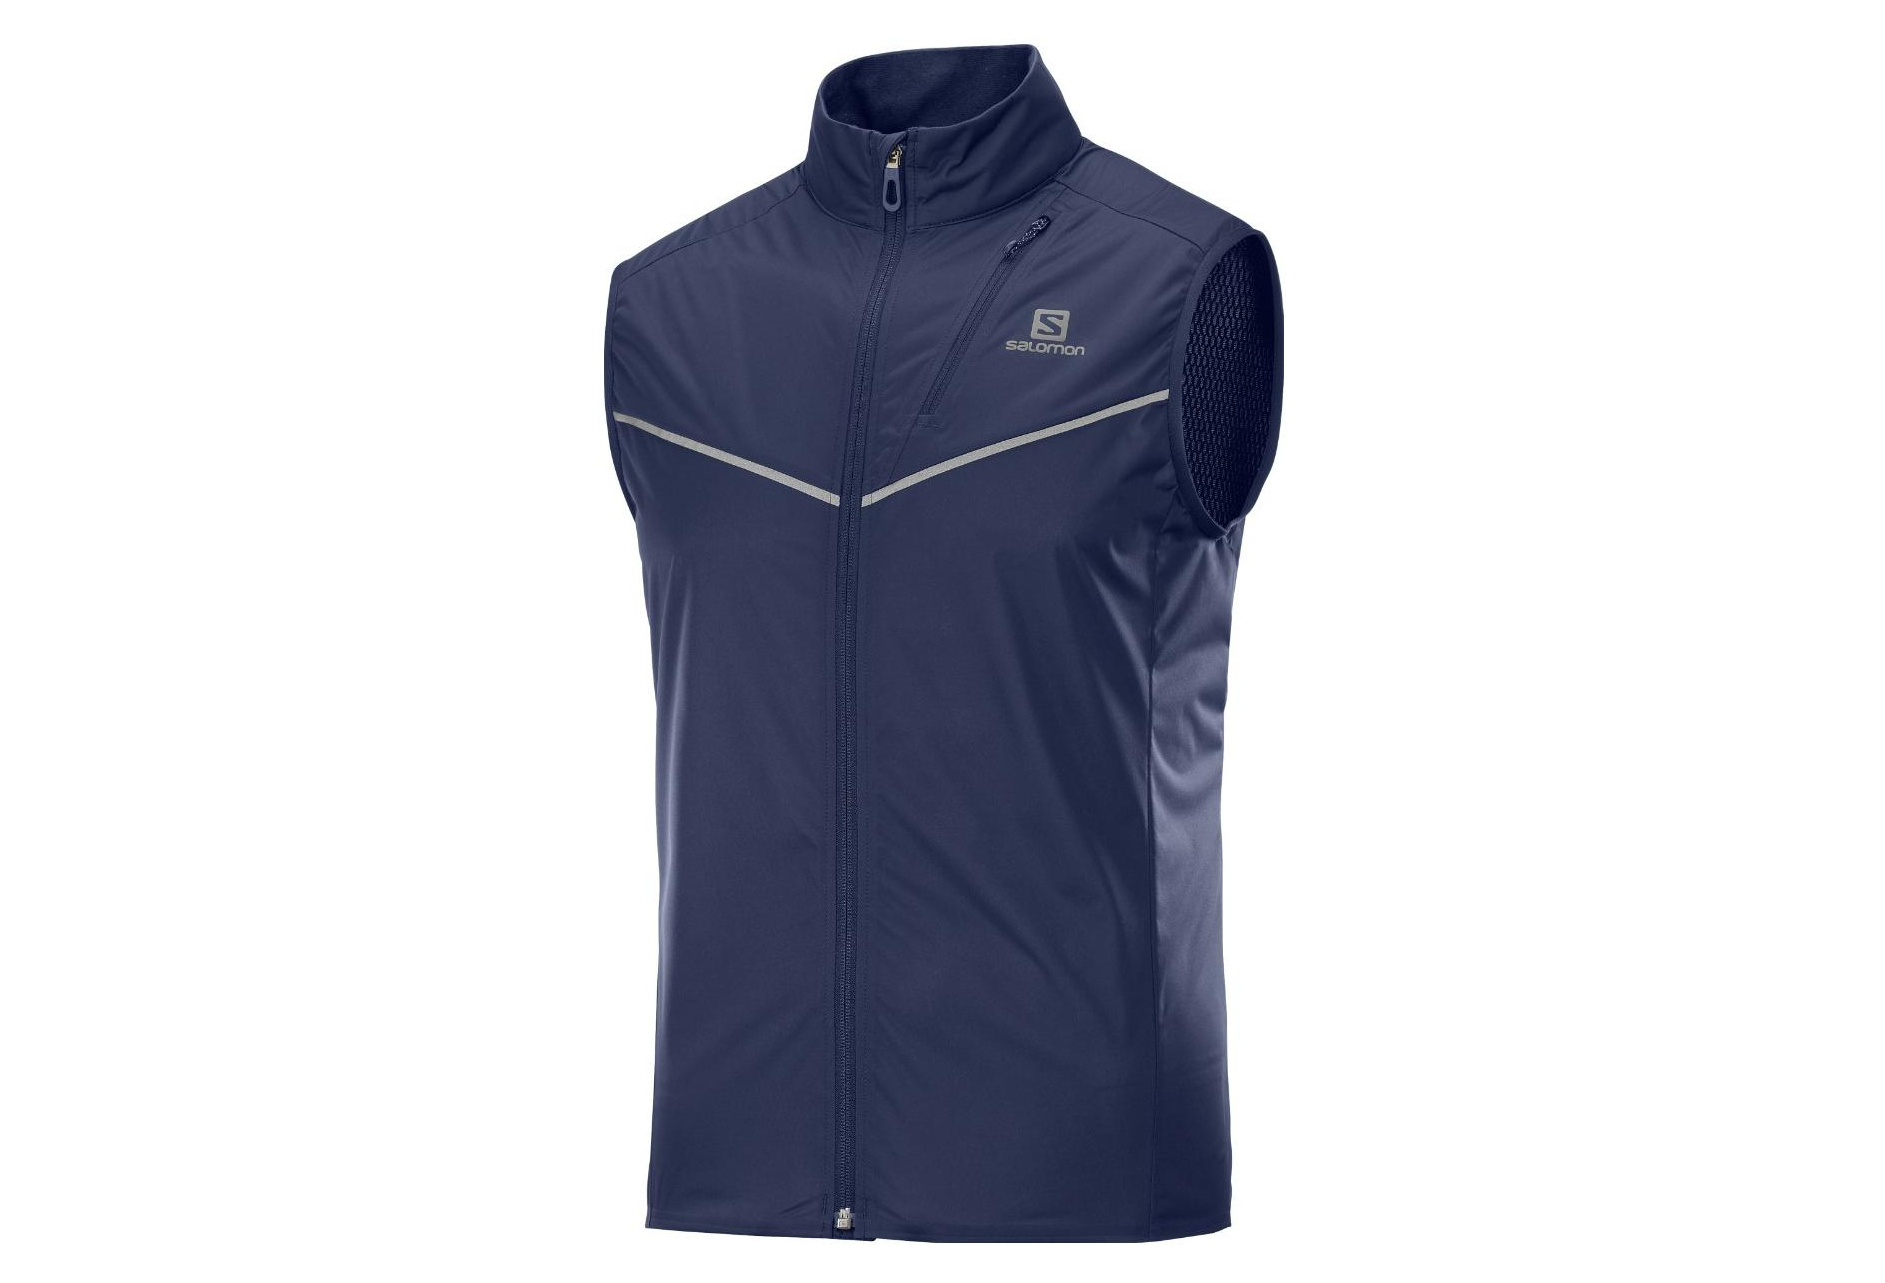 Veste sans manche Salomon Softshell Rs Light Bleu Homme